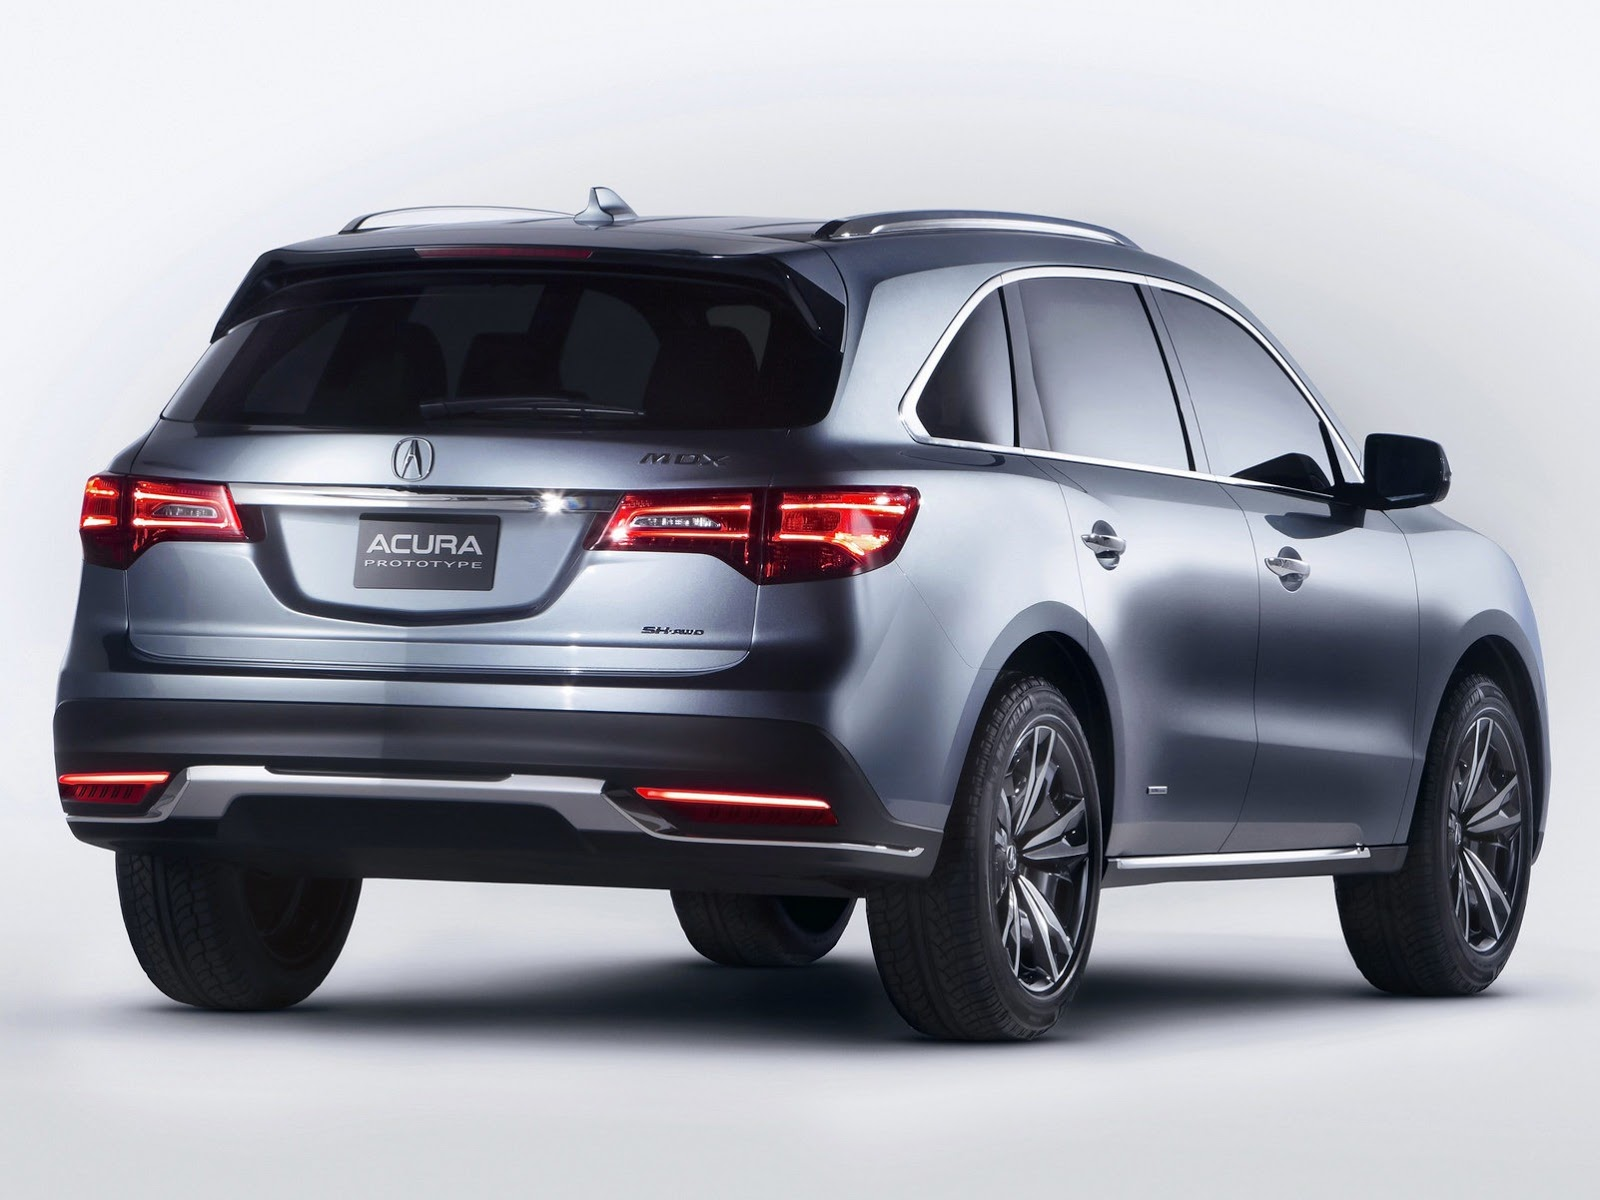 2014 Acura MDX Concept Wallpaper Free For Ipad